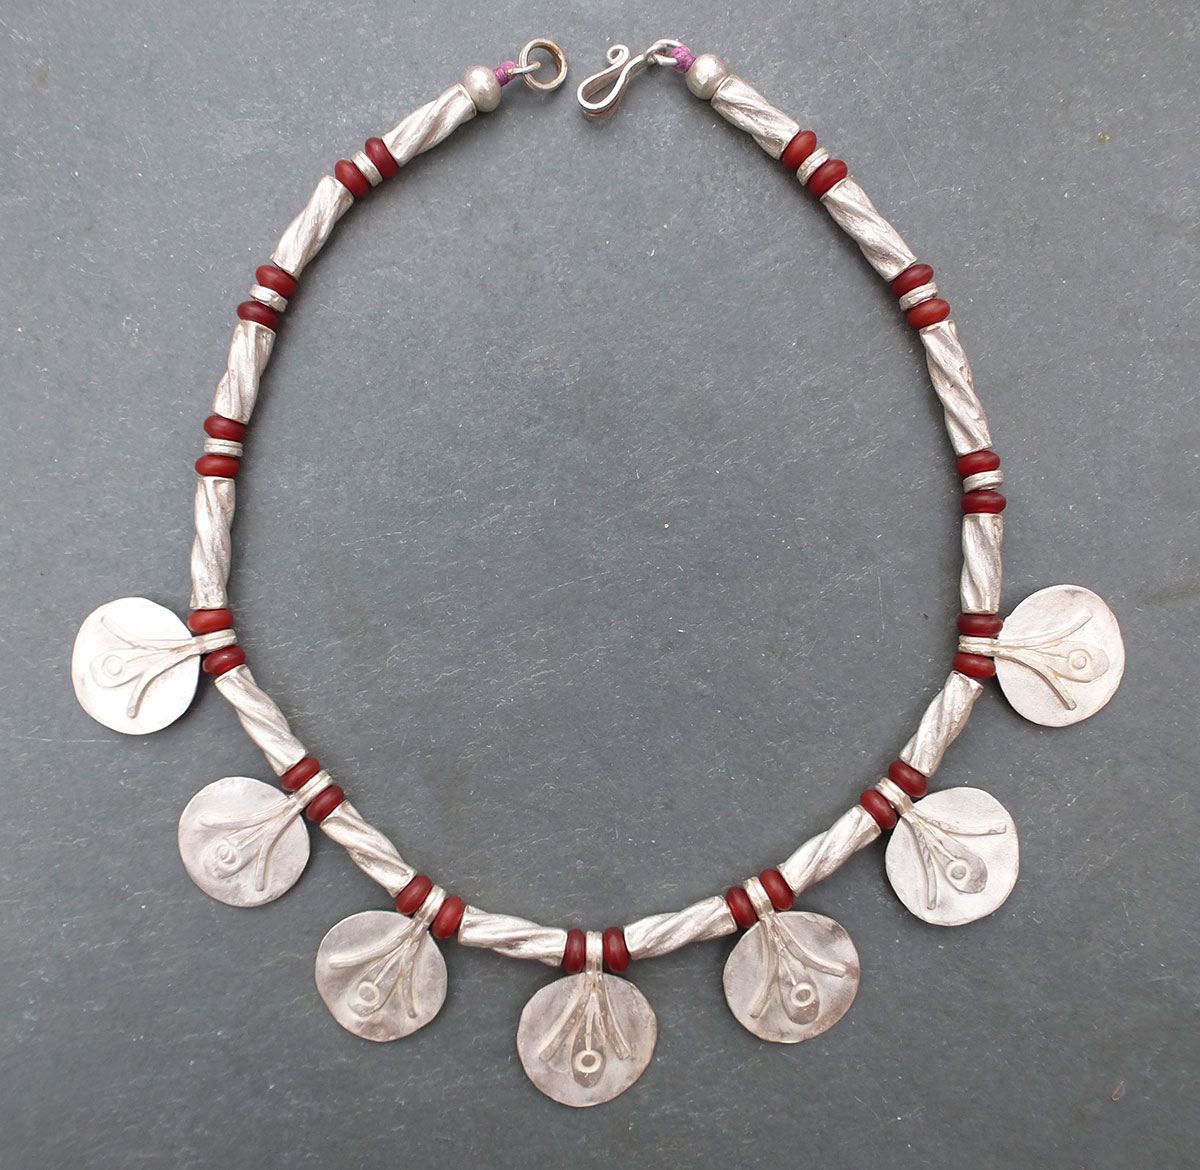 Carnelian and silver necklace GUY ROYLE